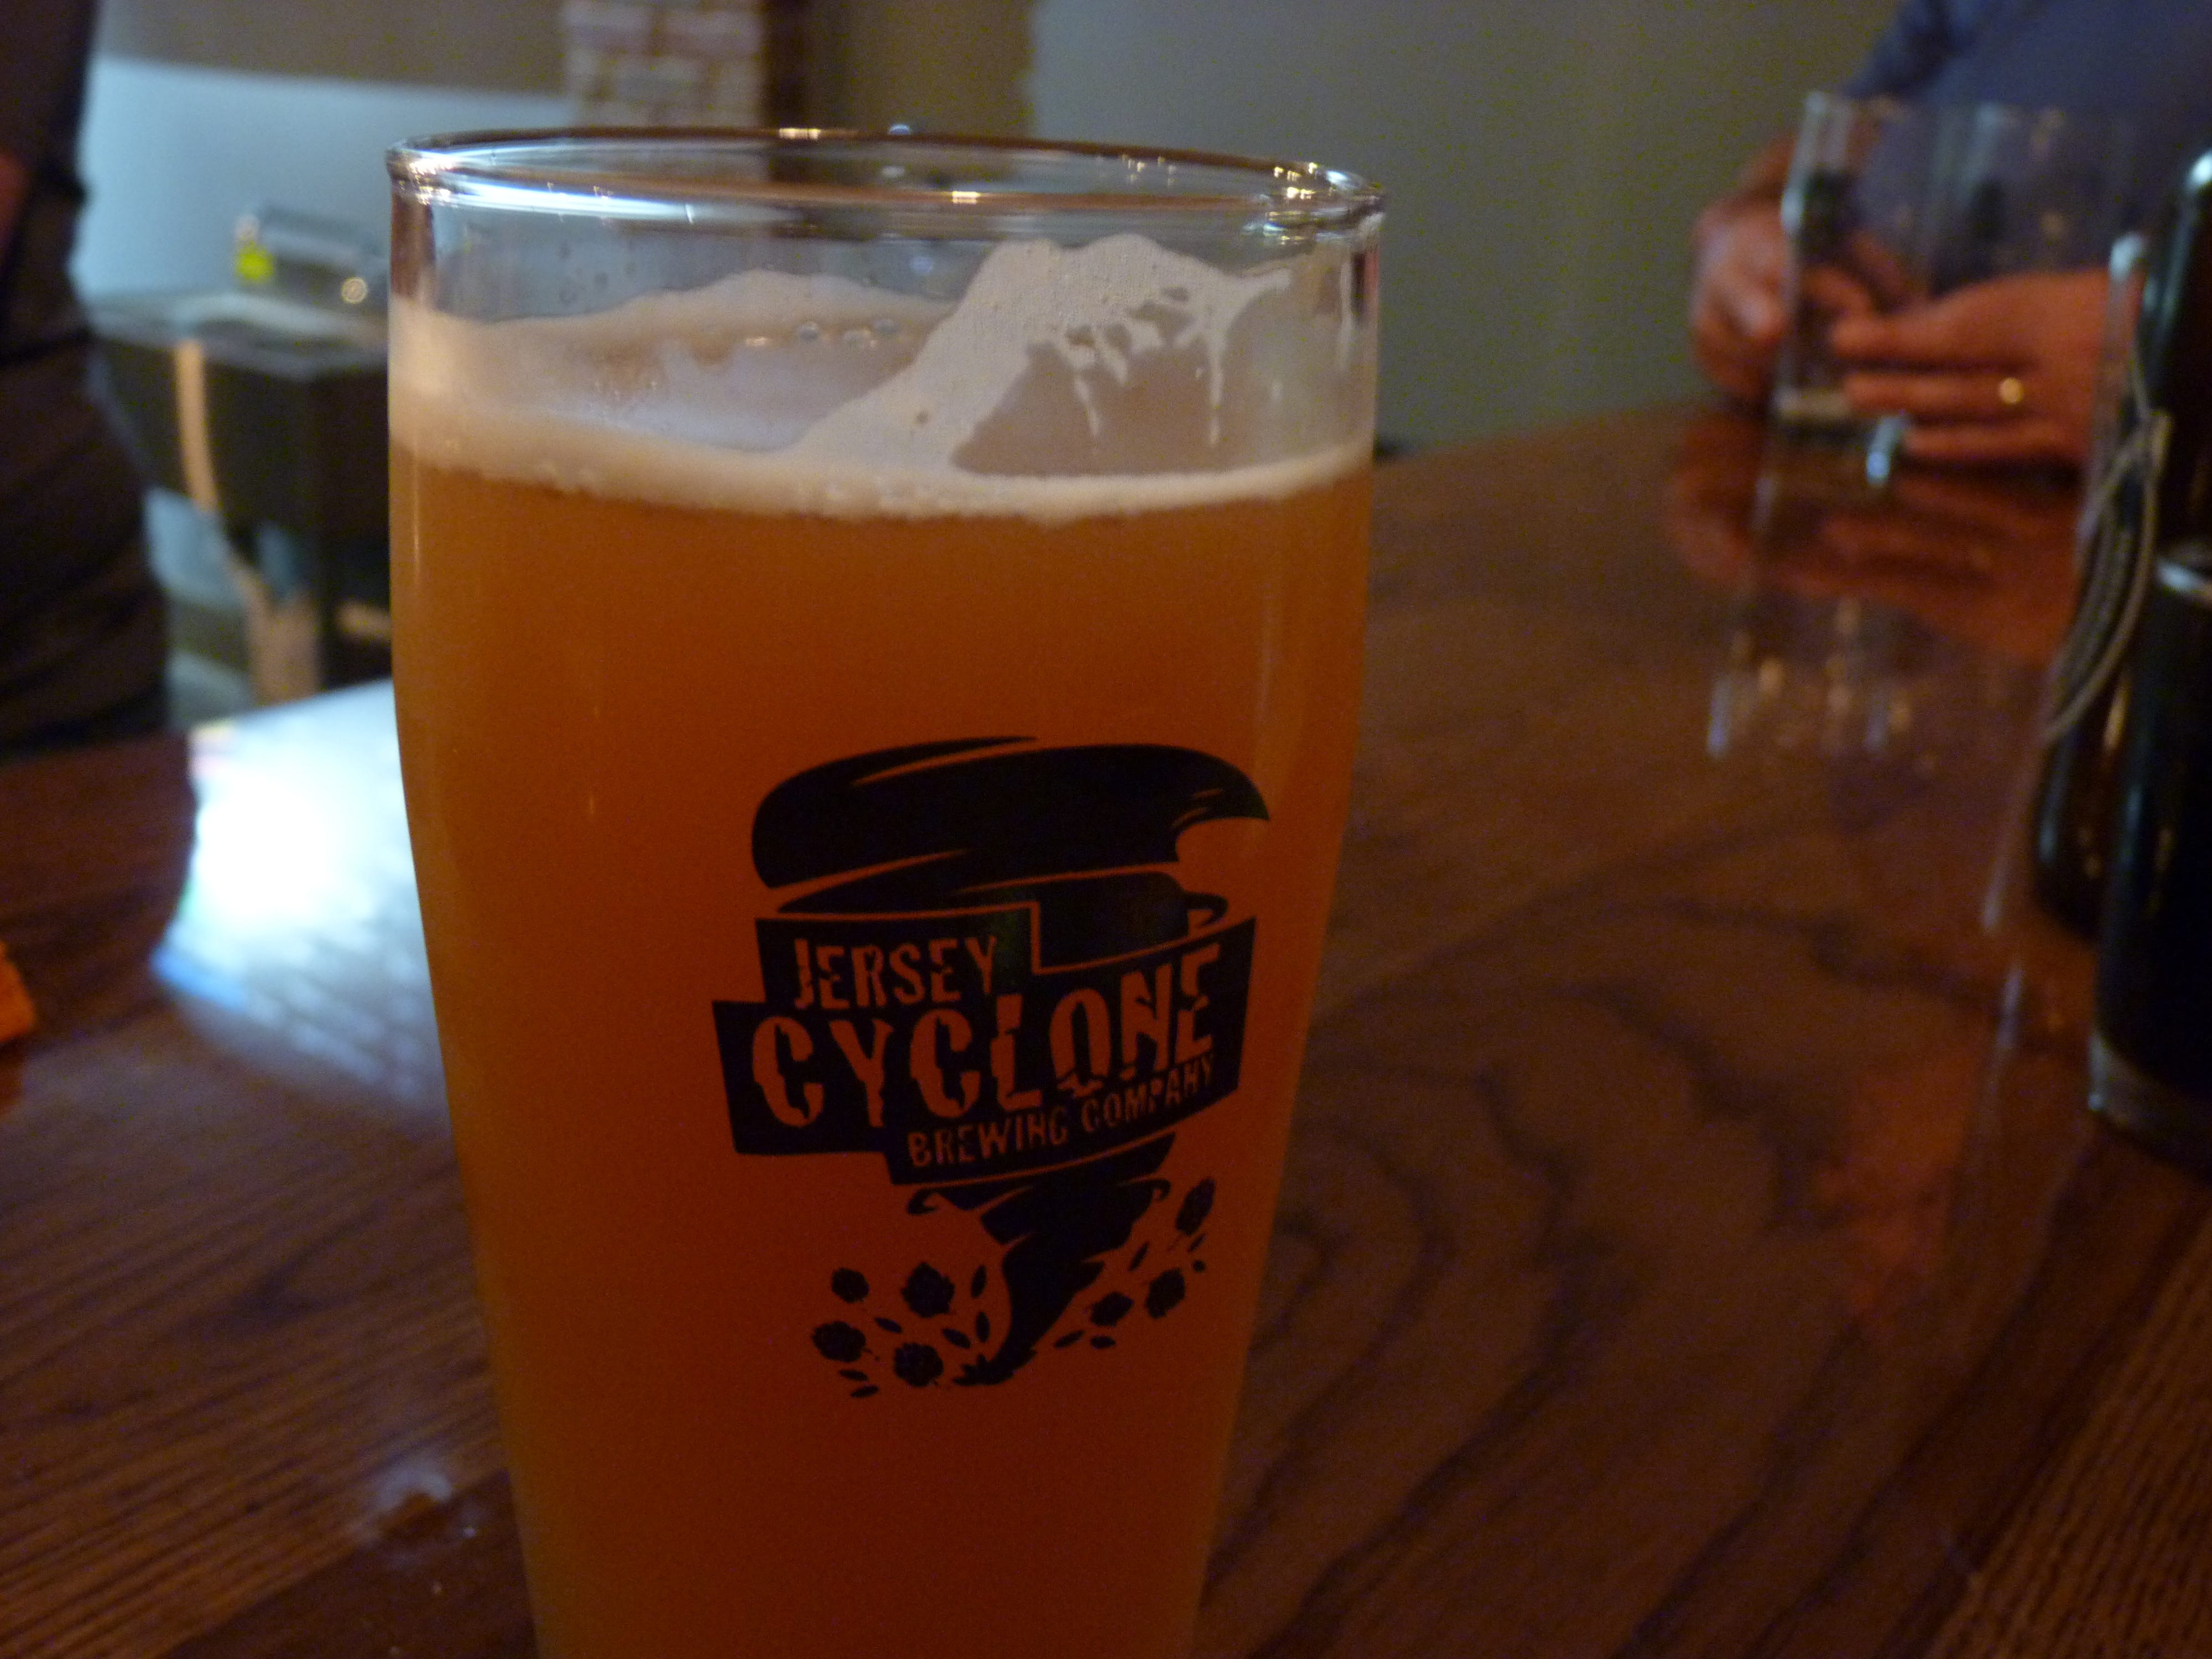 Jersey Cyclone Brewing Company officially opened its doors on Saturday, May 4 at 14 Worlds Fair Dr. in Somerset.